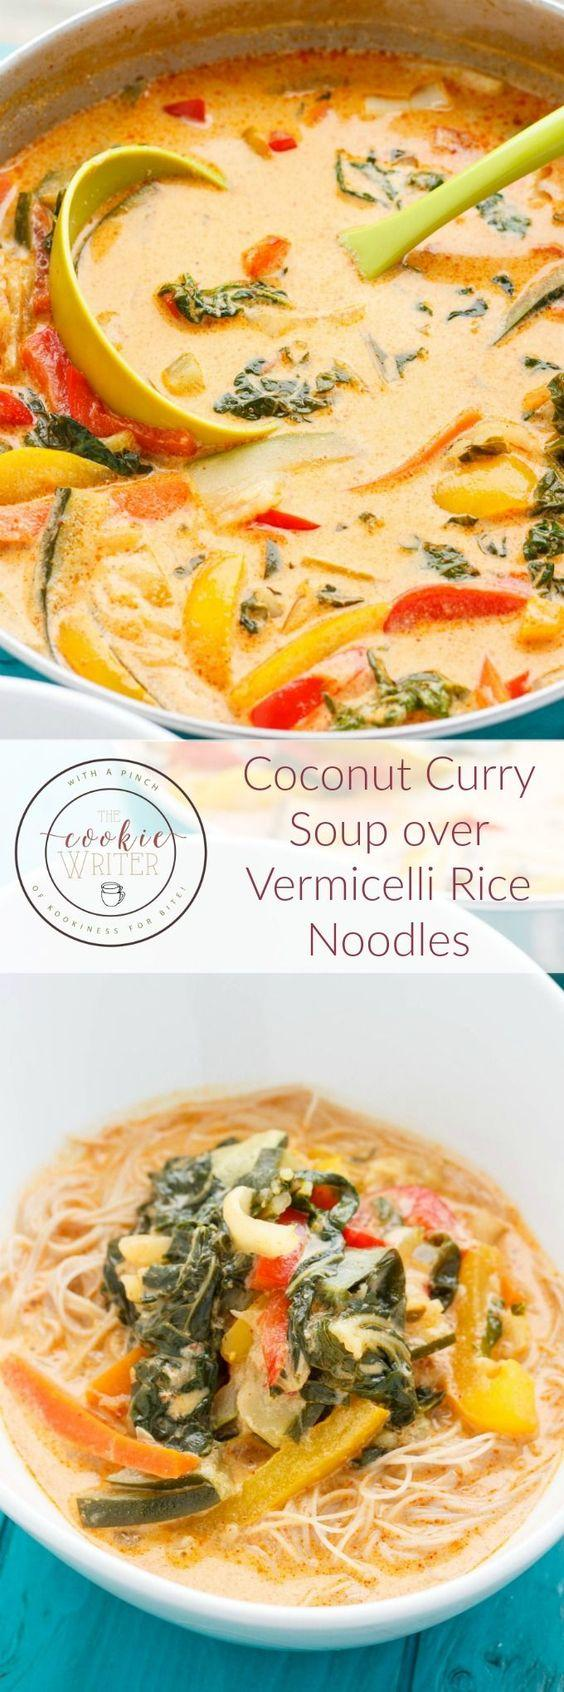 Vegetable Recipes For Kids || Kid Friendly Vegetable Recipes. Coconut Curry Soup over Vermicelli Rice Noodles. A light and refreshing soup that is completed in less than 30 minutes, the addition of snap or snow peas would be perfect!